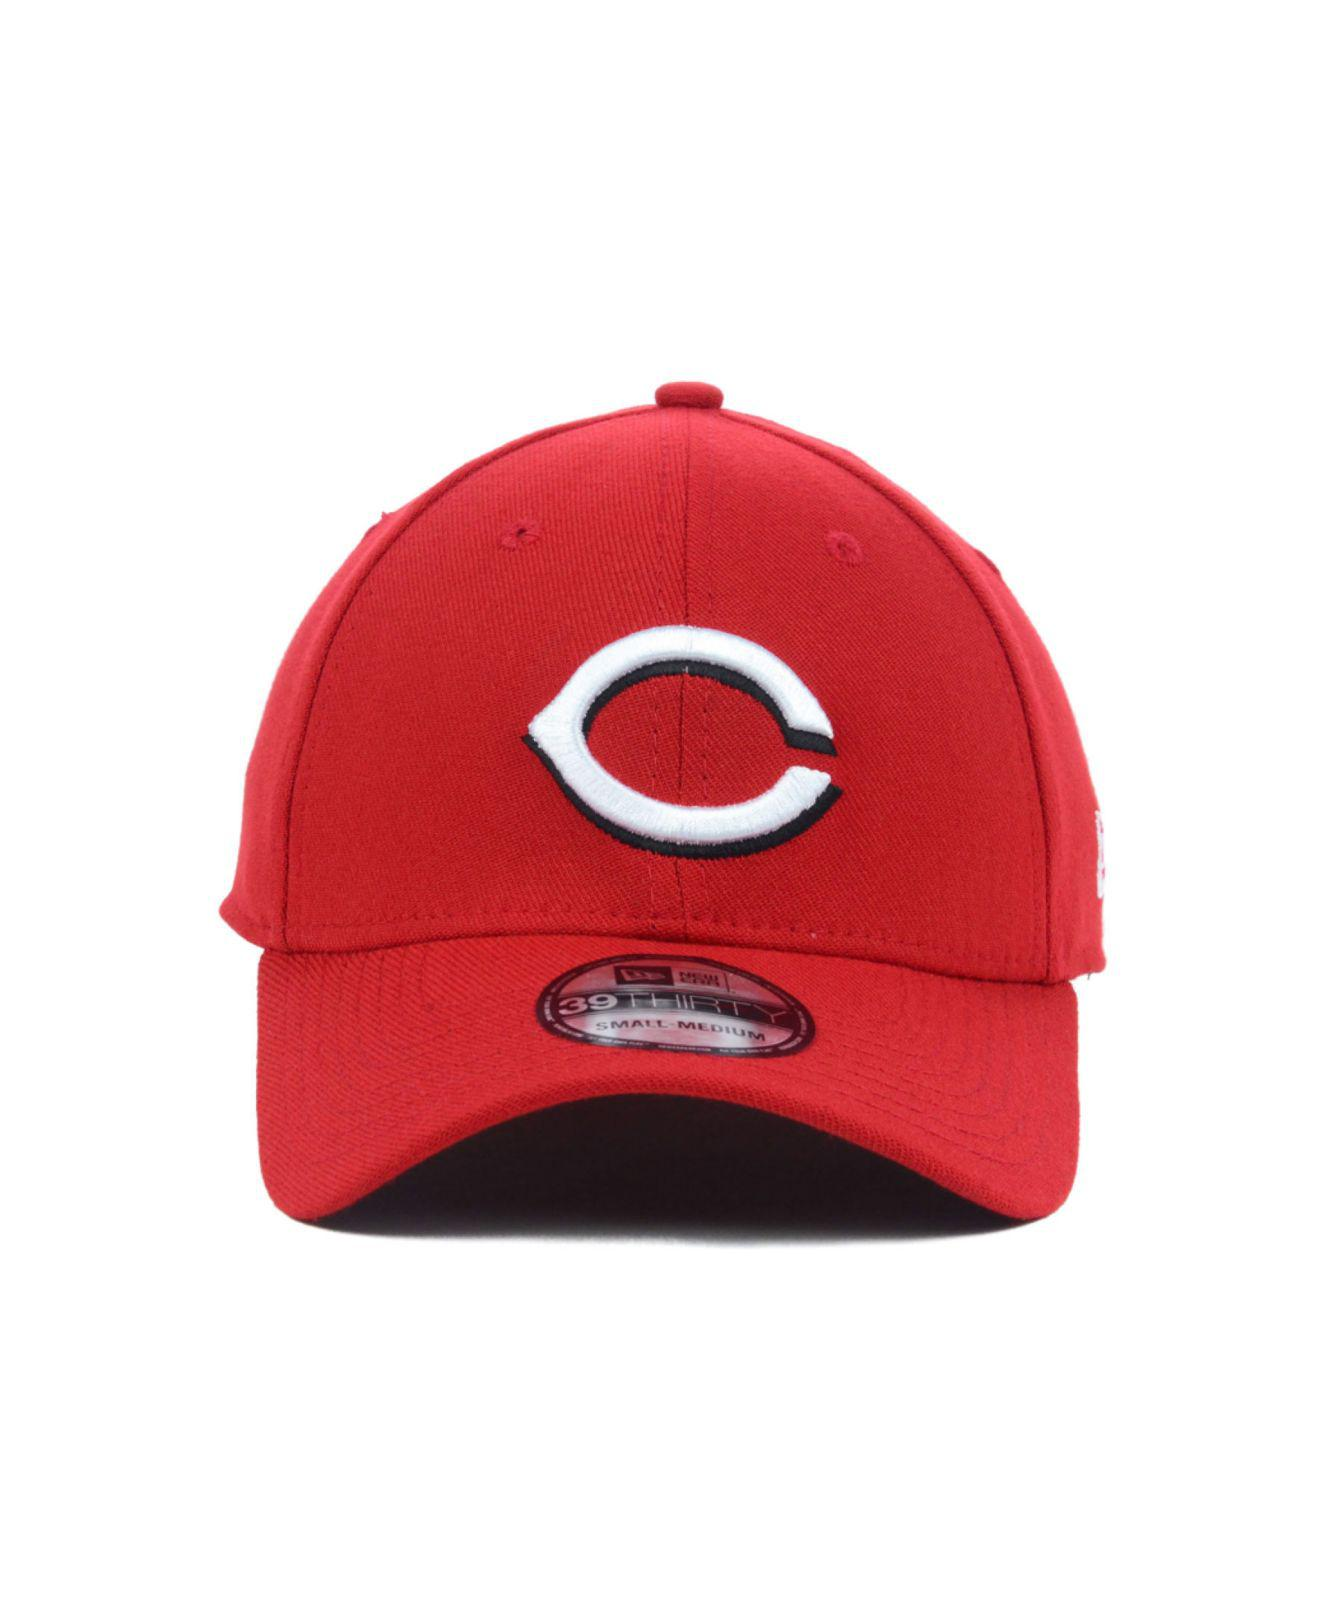 new style 4bc09 7397f ... sweden lyst ktz cincinnati reds mlb team classic 39thirty cap in red  for men 4f7bf cf38d